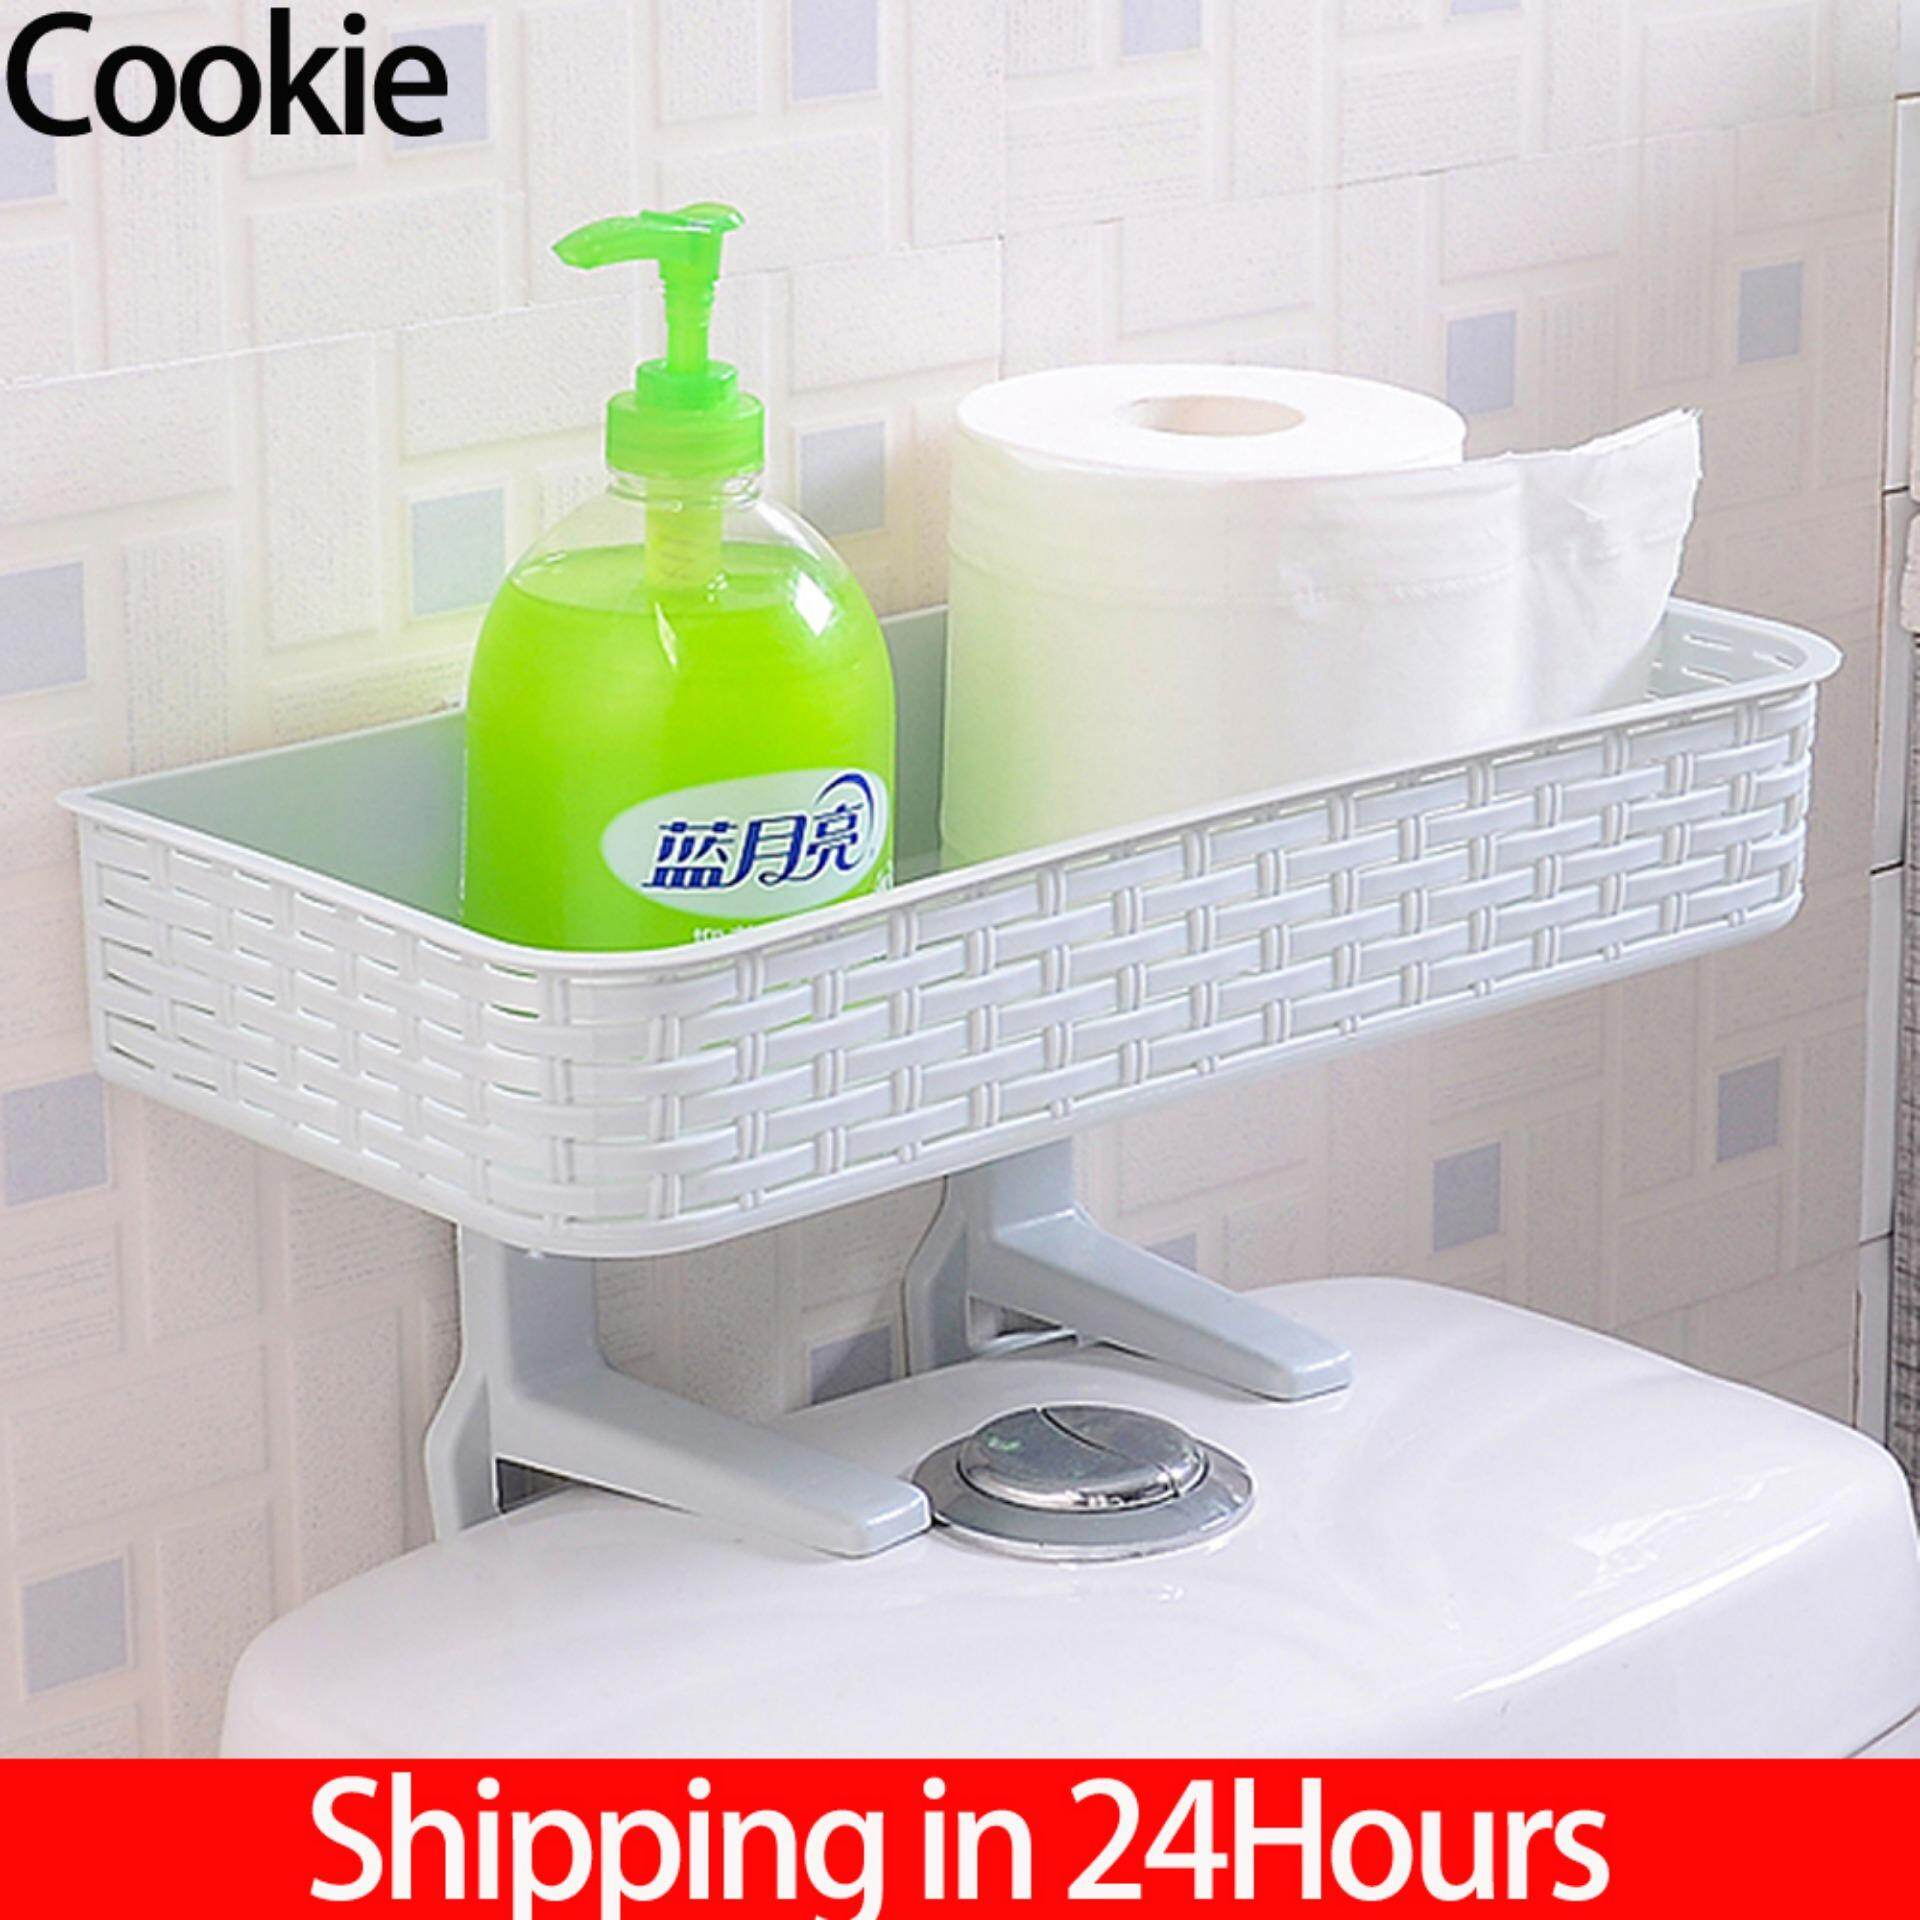 【time-Limited Promotions】strong Suction Wall Toilet Rack Bathroom Shower Hanging Shelf Supplies Toilet Storage Basket Rack Organizer(blue) By Cookie123.